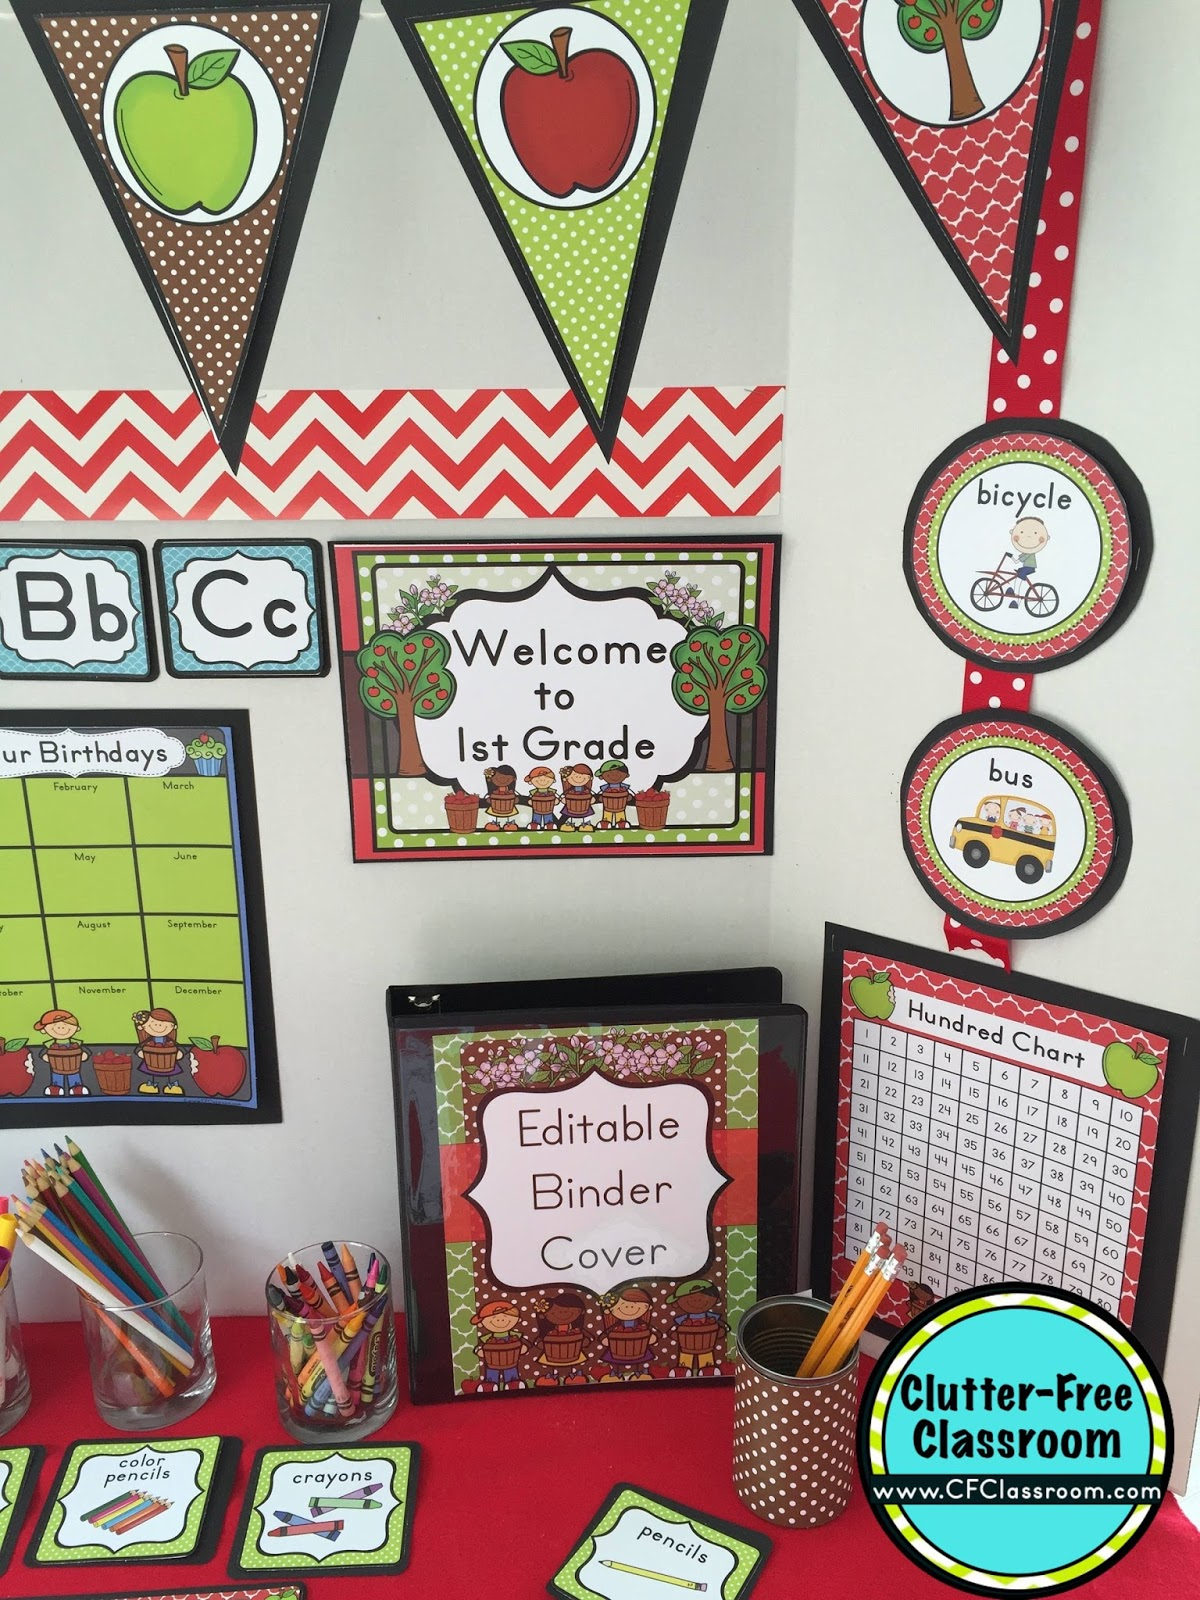 click to access download apple classroom theme - Classroom Design Ideas